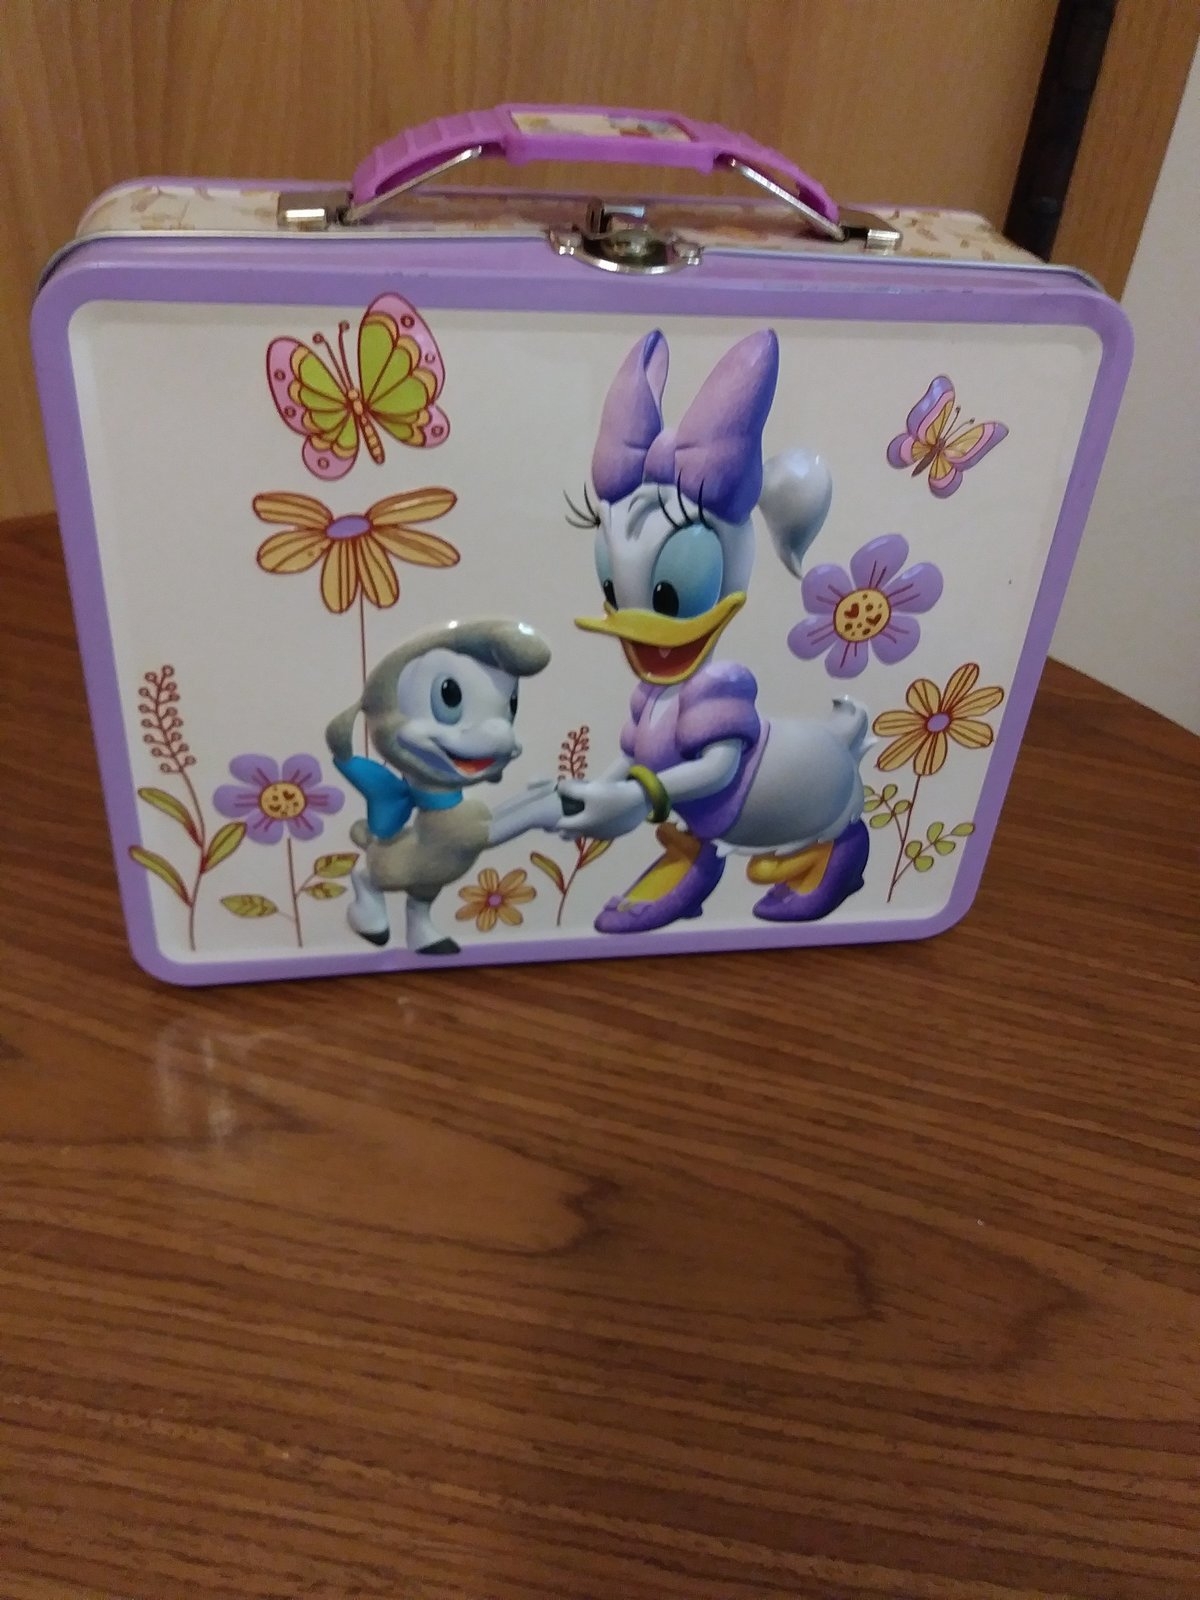 Daisy & Minnie Lunch Tin Box made in China Excellent Condition